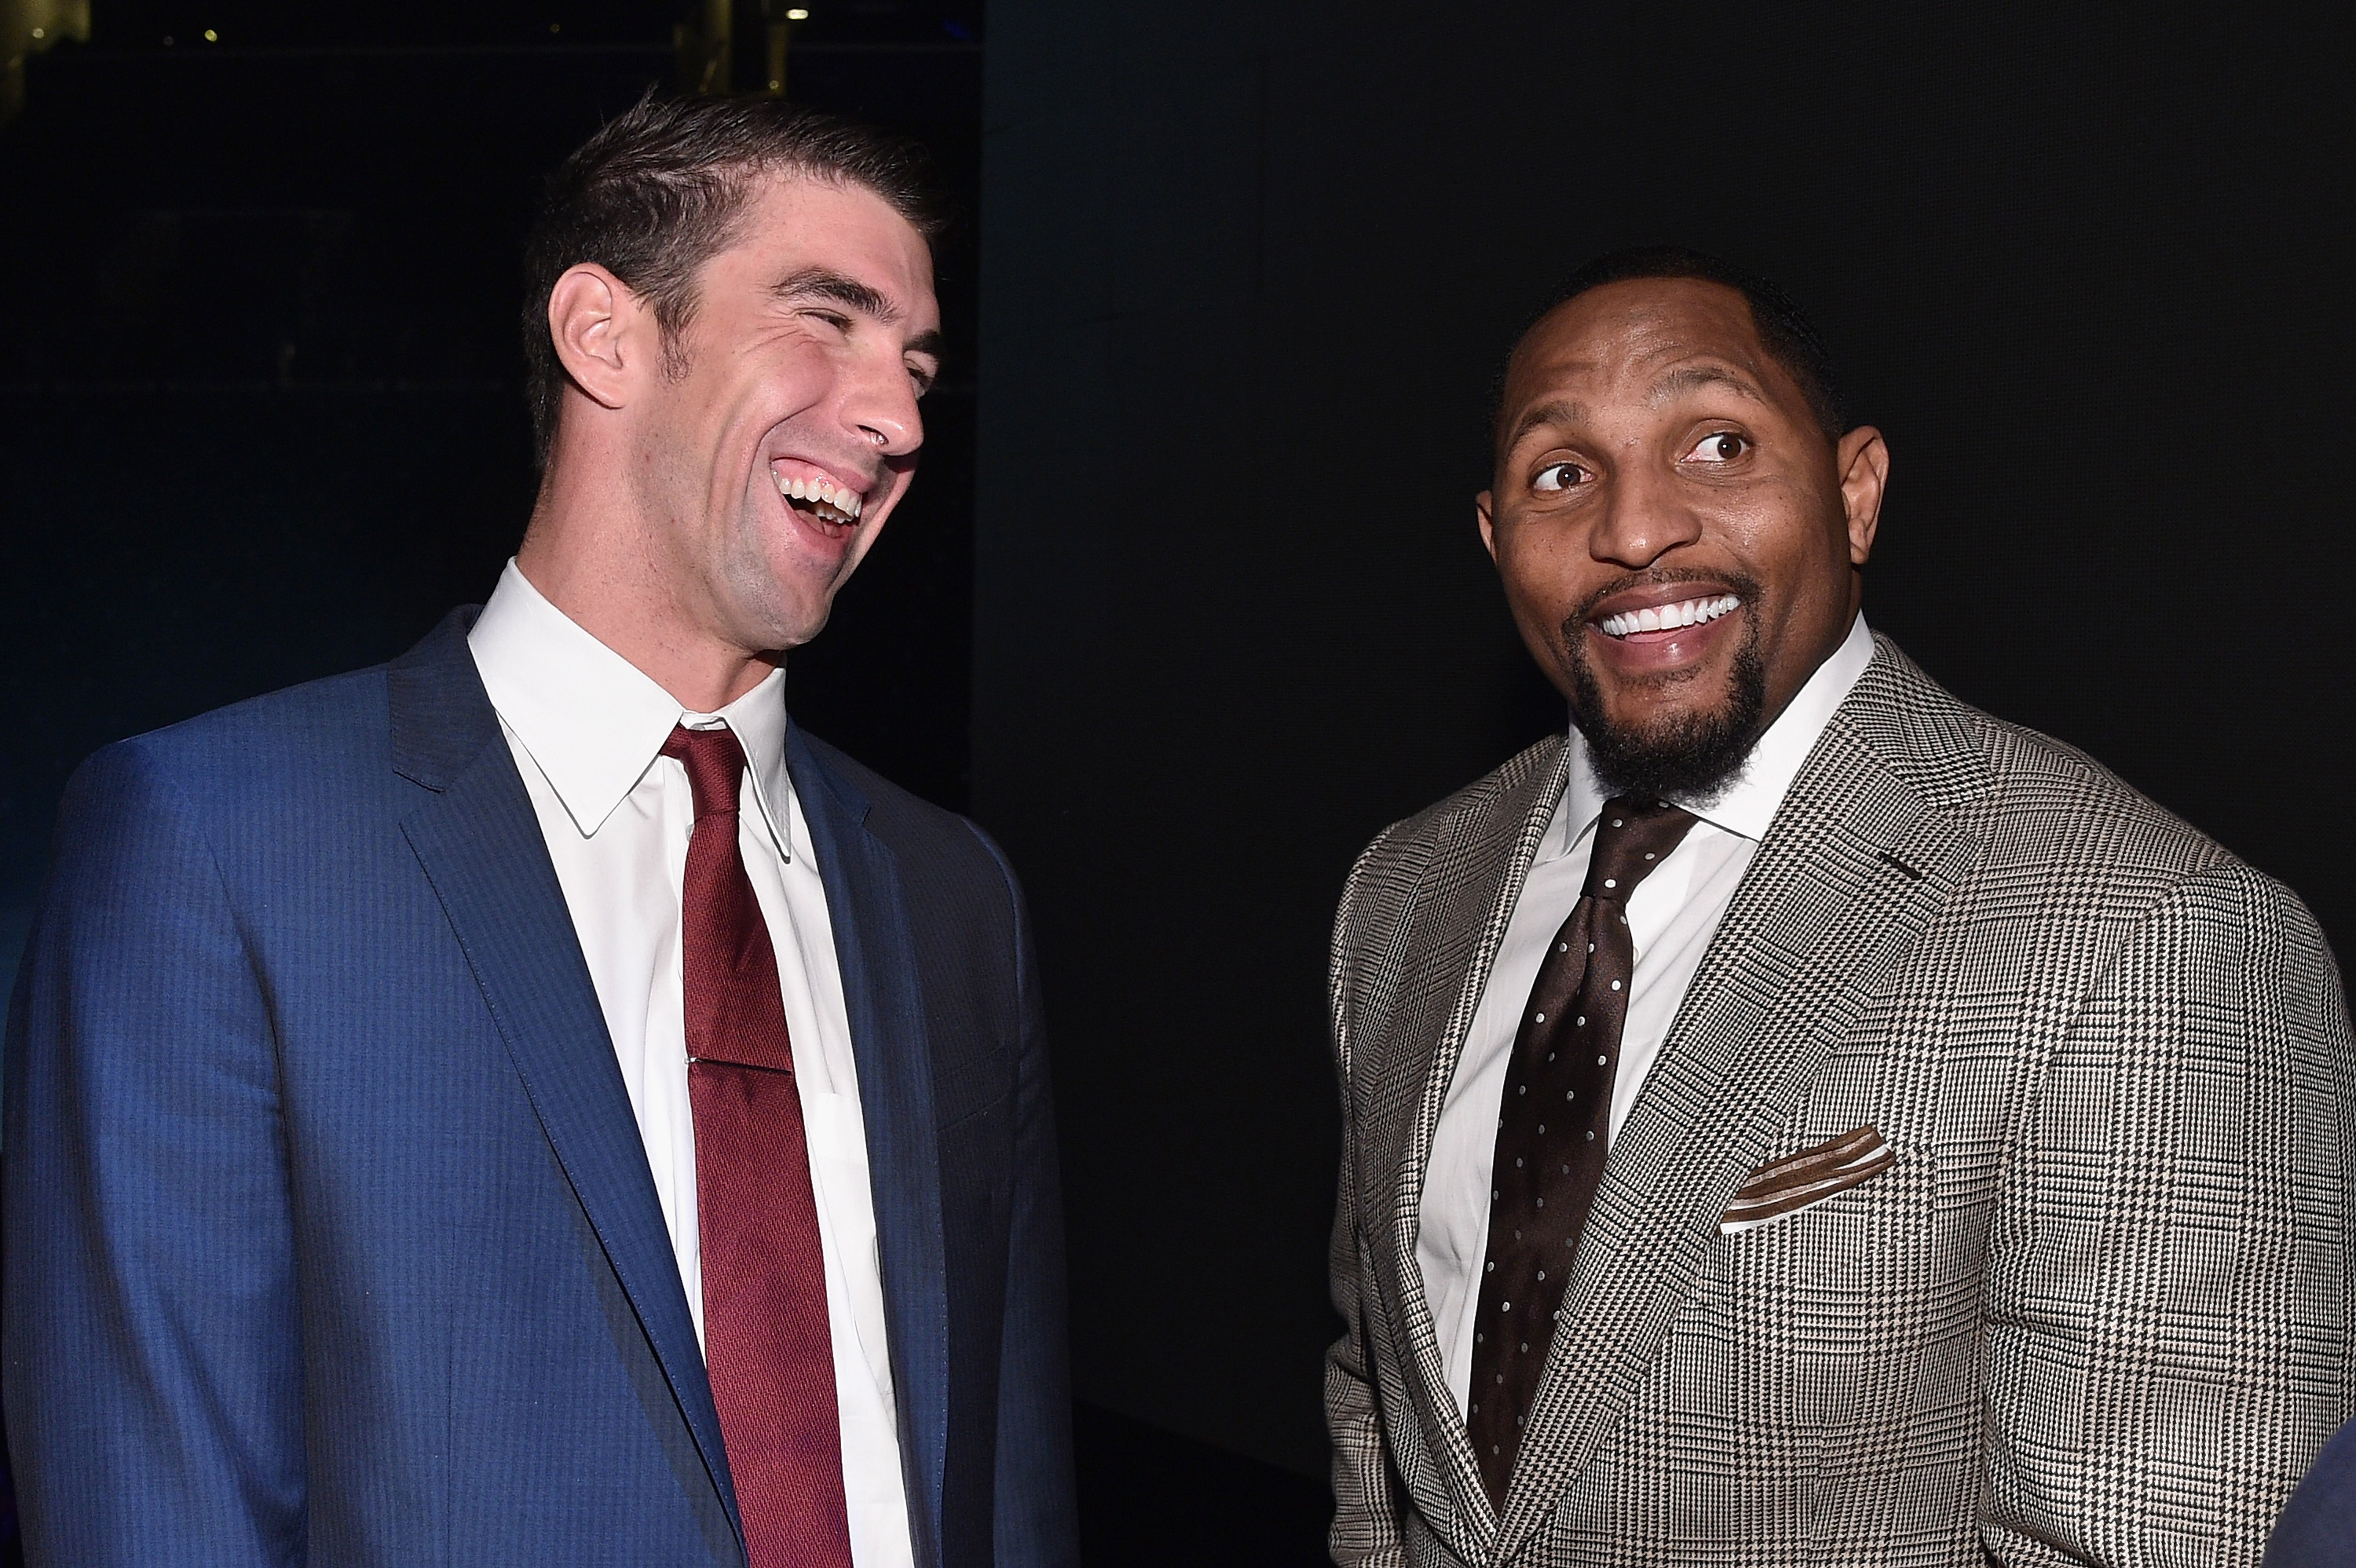 Michael Phelps and Ray Lewis attend the Sports Illustrated Sportsperson of the Year Ceremony